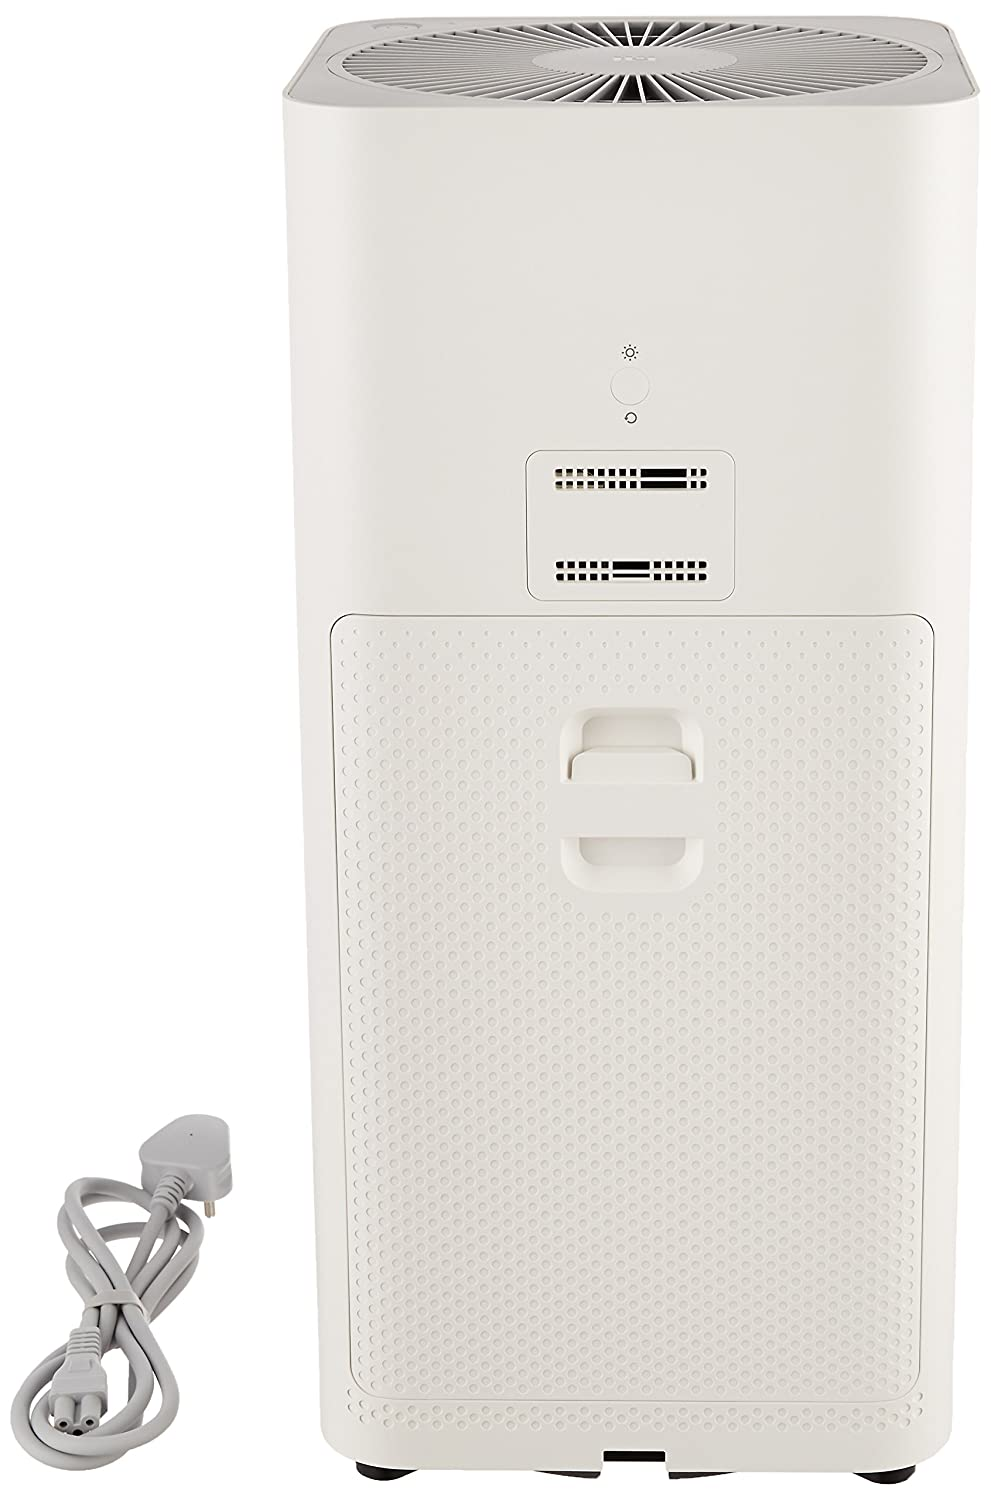 Xiaomi MI Portable Air Purifier 2 with Free APP